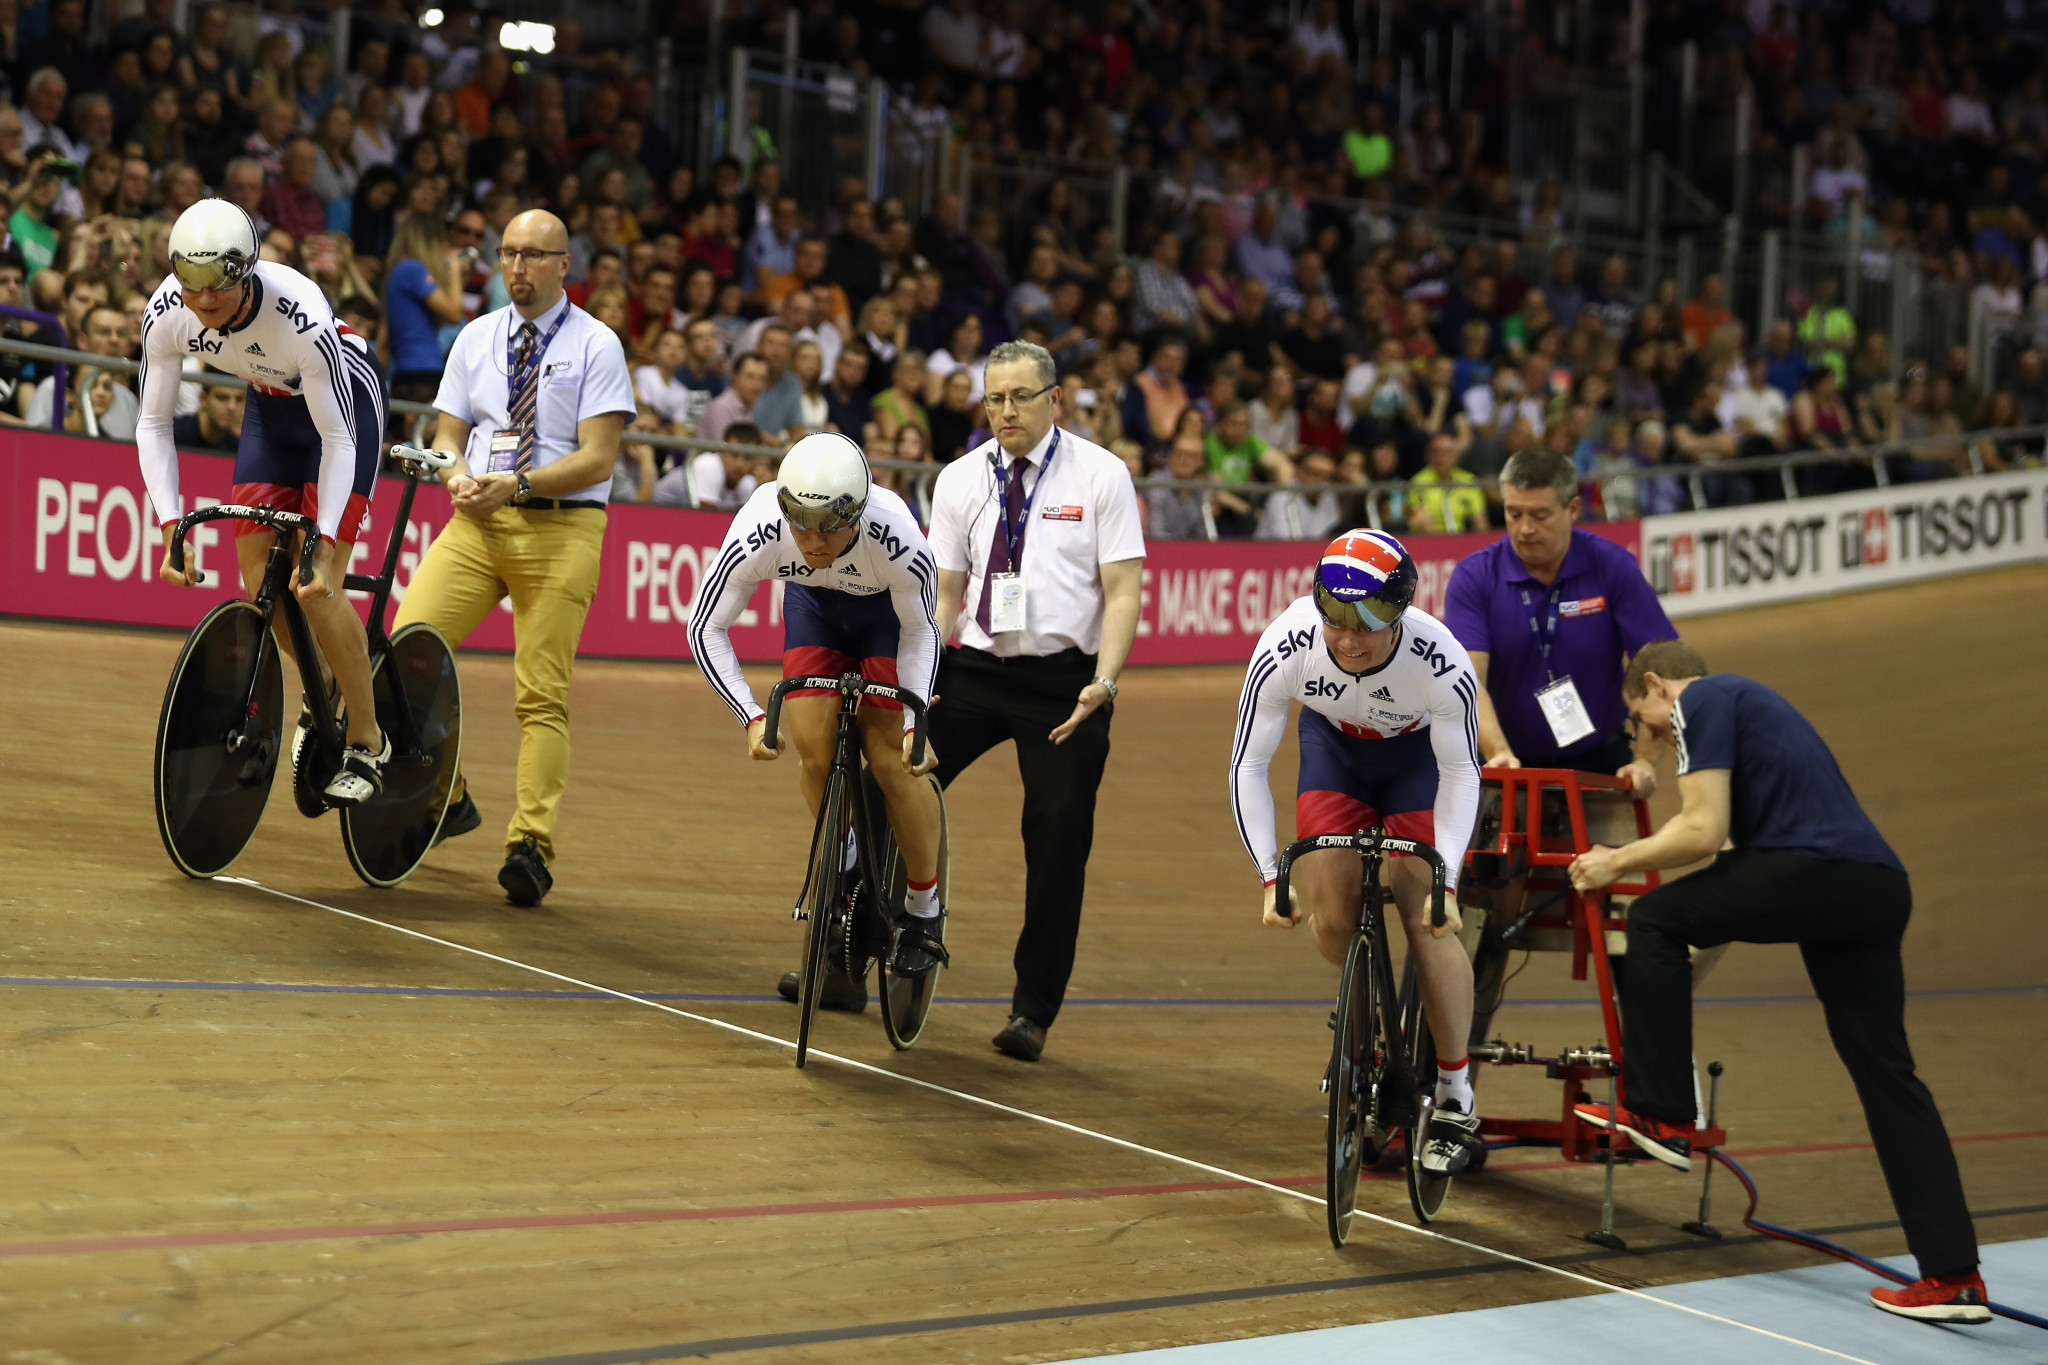 Track cycling competition will be held at the Sir Chris Hoy Velodrome next year ©Getty Images